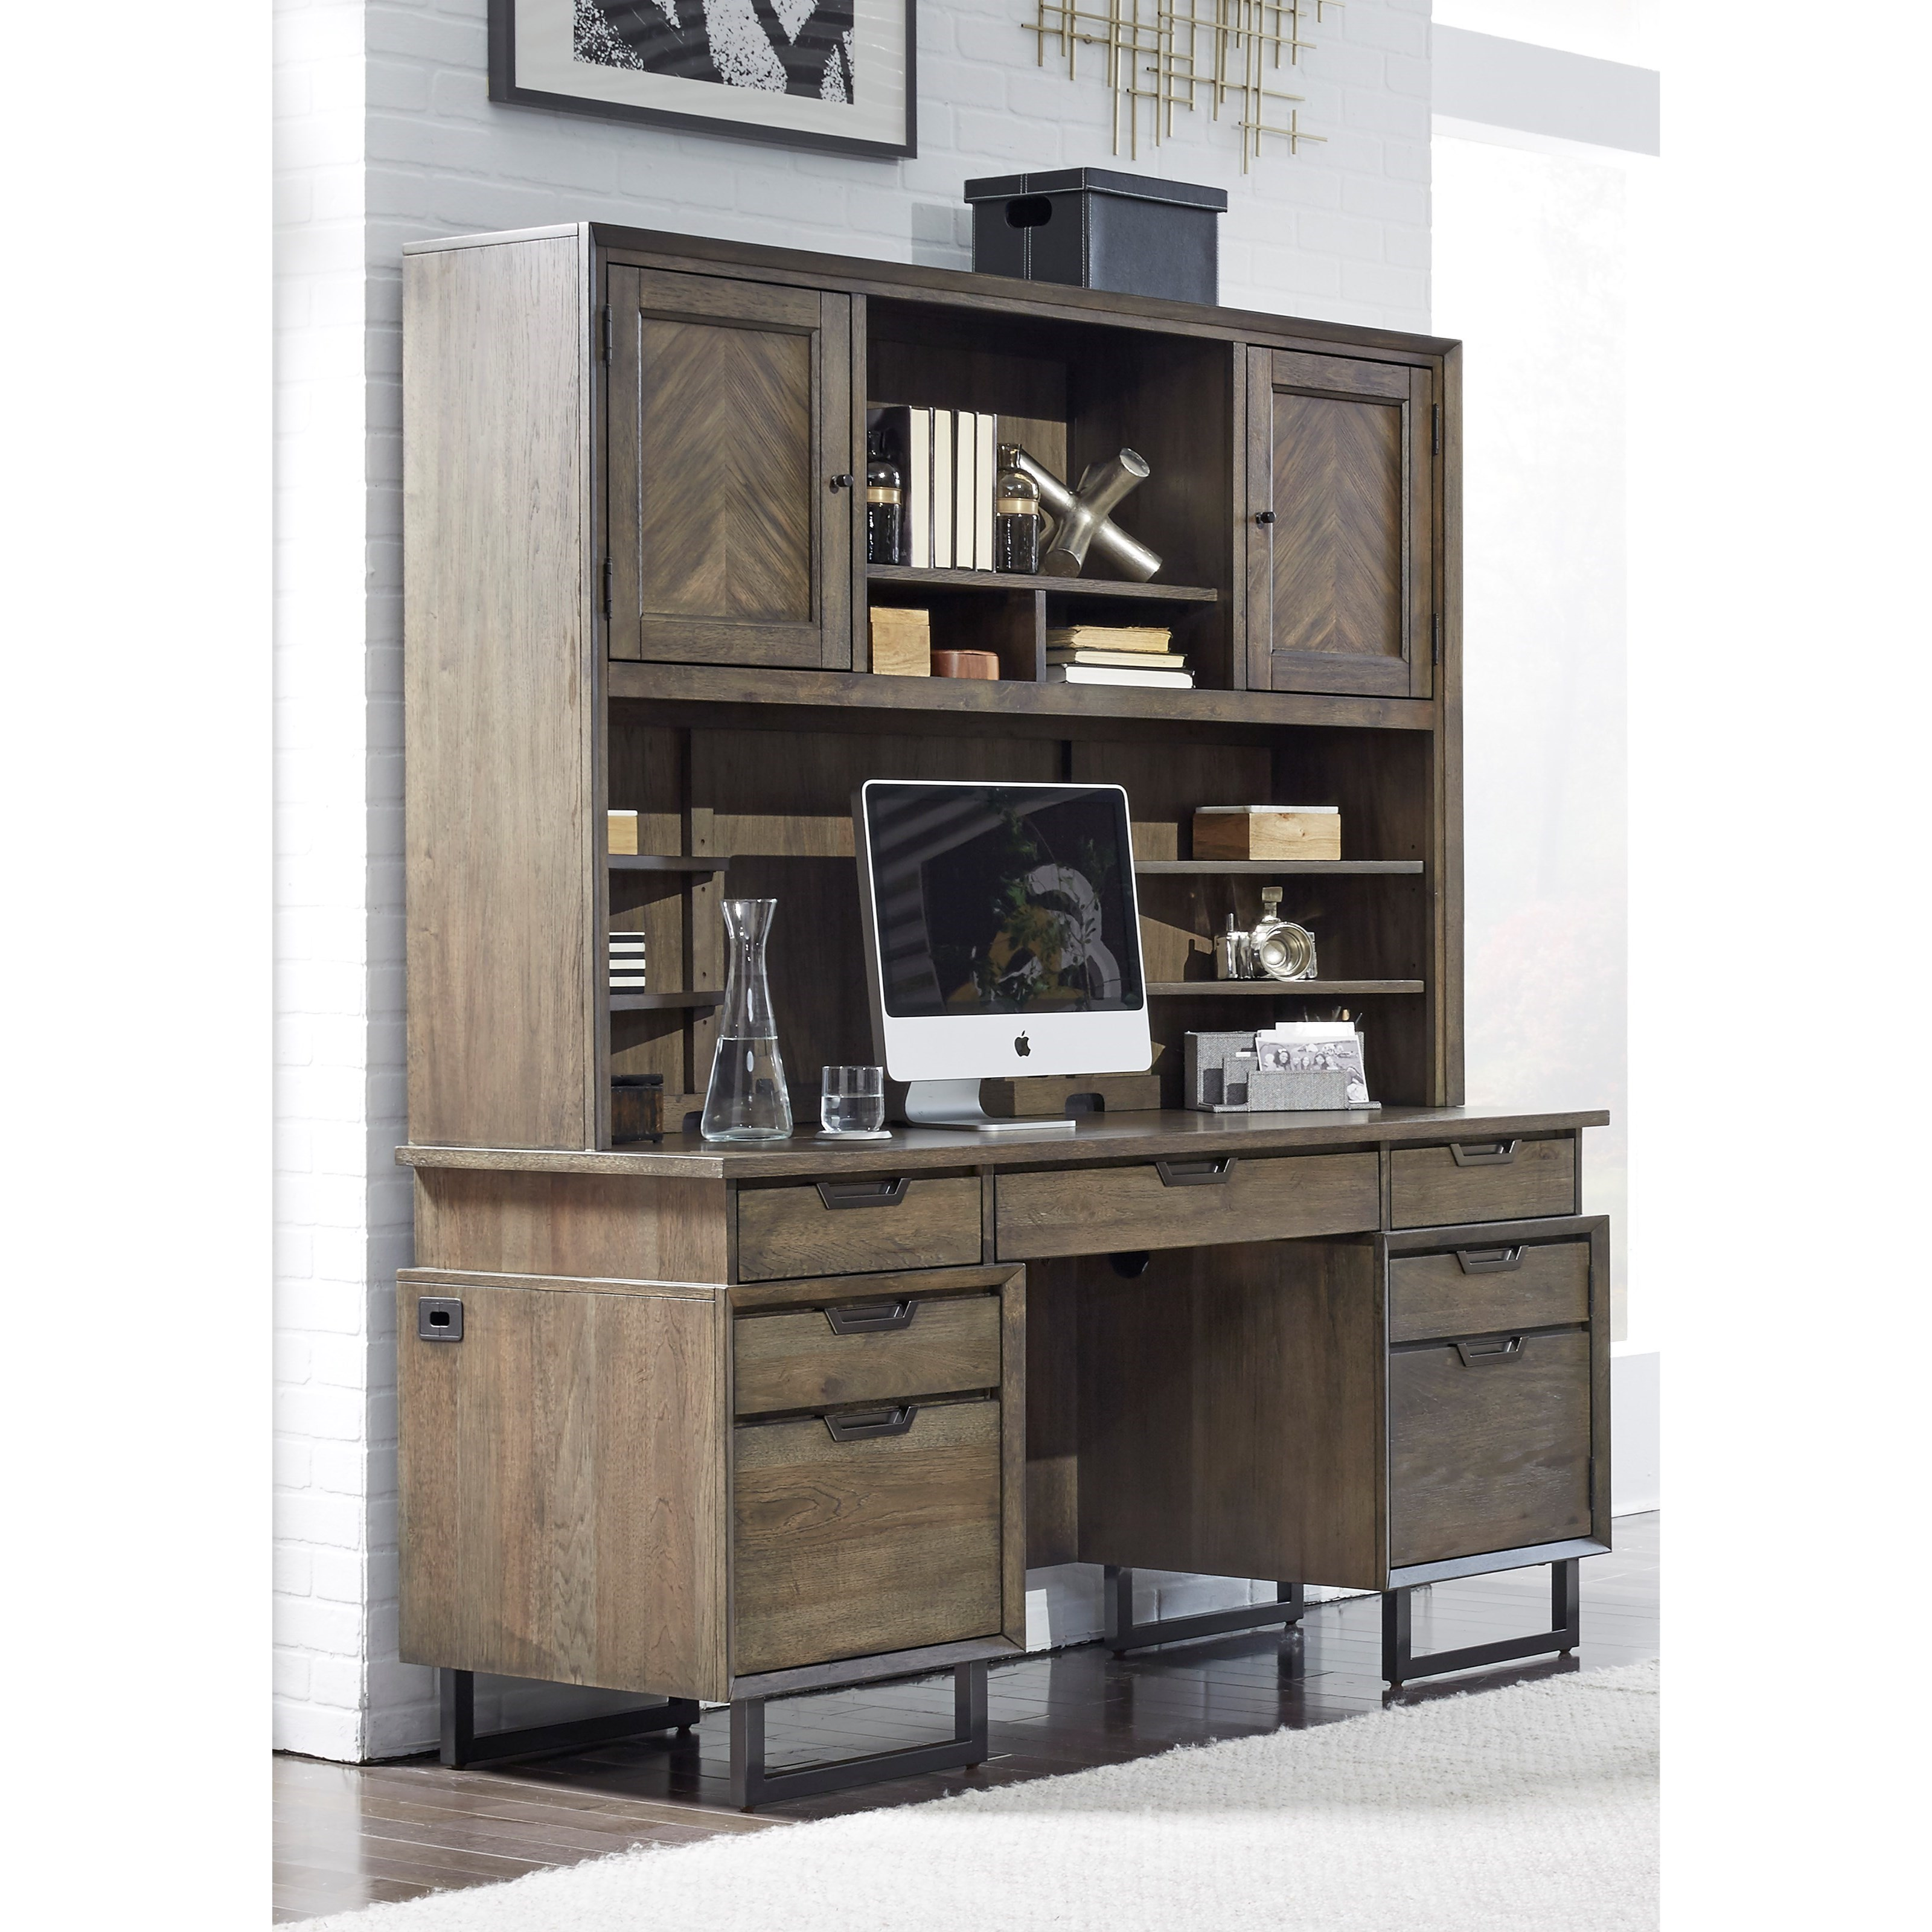 Harper Point Desk and Hutch by Aspenhome at Darvin Furniture